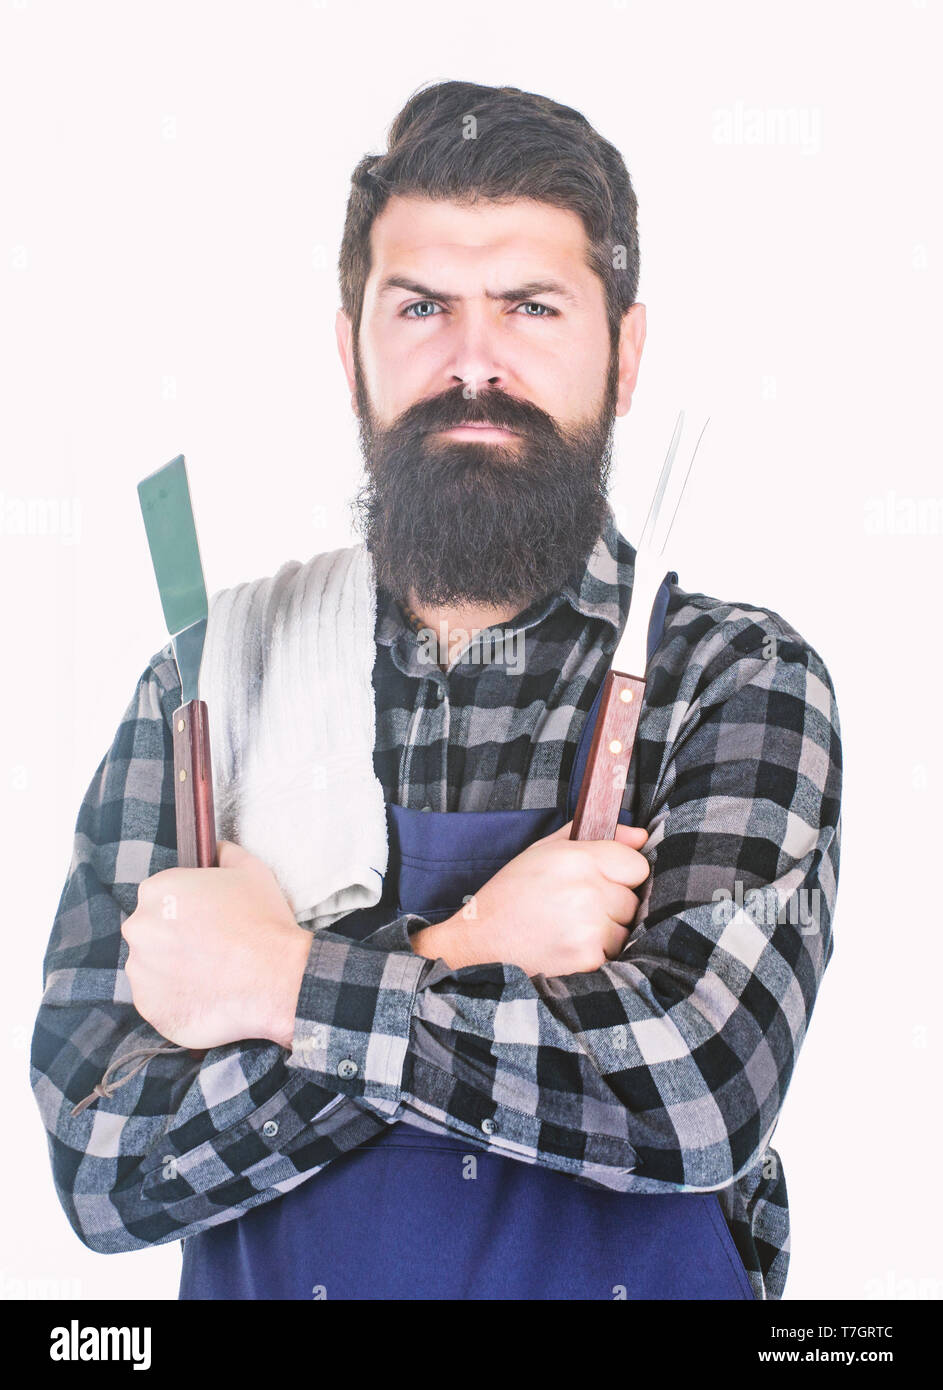 Bearded hipster wear apron for barbecue. Roasting and grilling food. Man hold cooking utensils barbecue. Tools for roasting meat outdoors. Picnic and barbecue. Cooking meat in park. Masculine hobby. - Stock Image